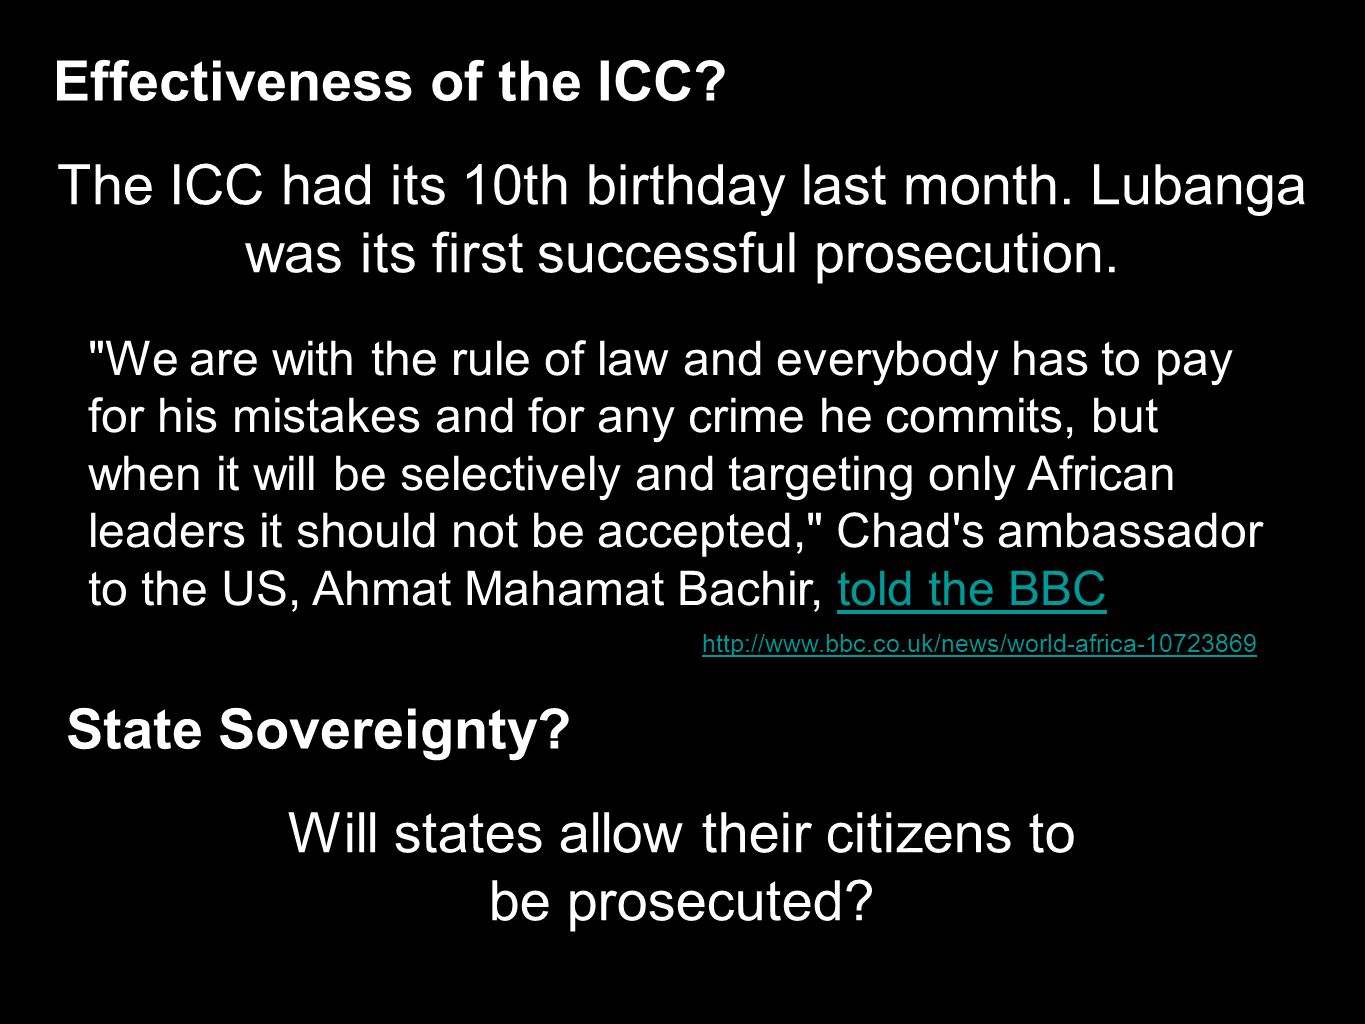 Legal Responses to Human Rights Issues The International Criminal Tribunal for the Former Yugoslavia (ICTY) The International Criminal Tribunal for Rwanda (ICTR) Special Court for Sierra Leone International Criminal Court UN Security Council Resolutions for Libya and Syria The main limitation: state sovereignty